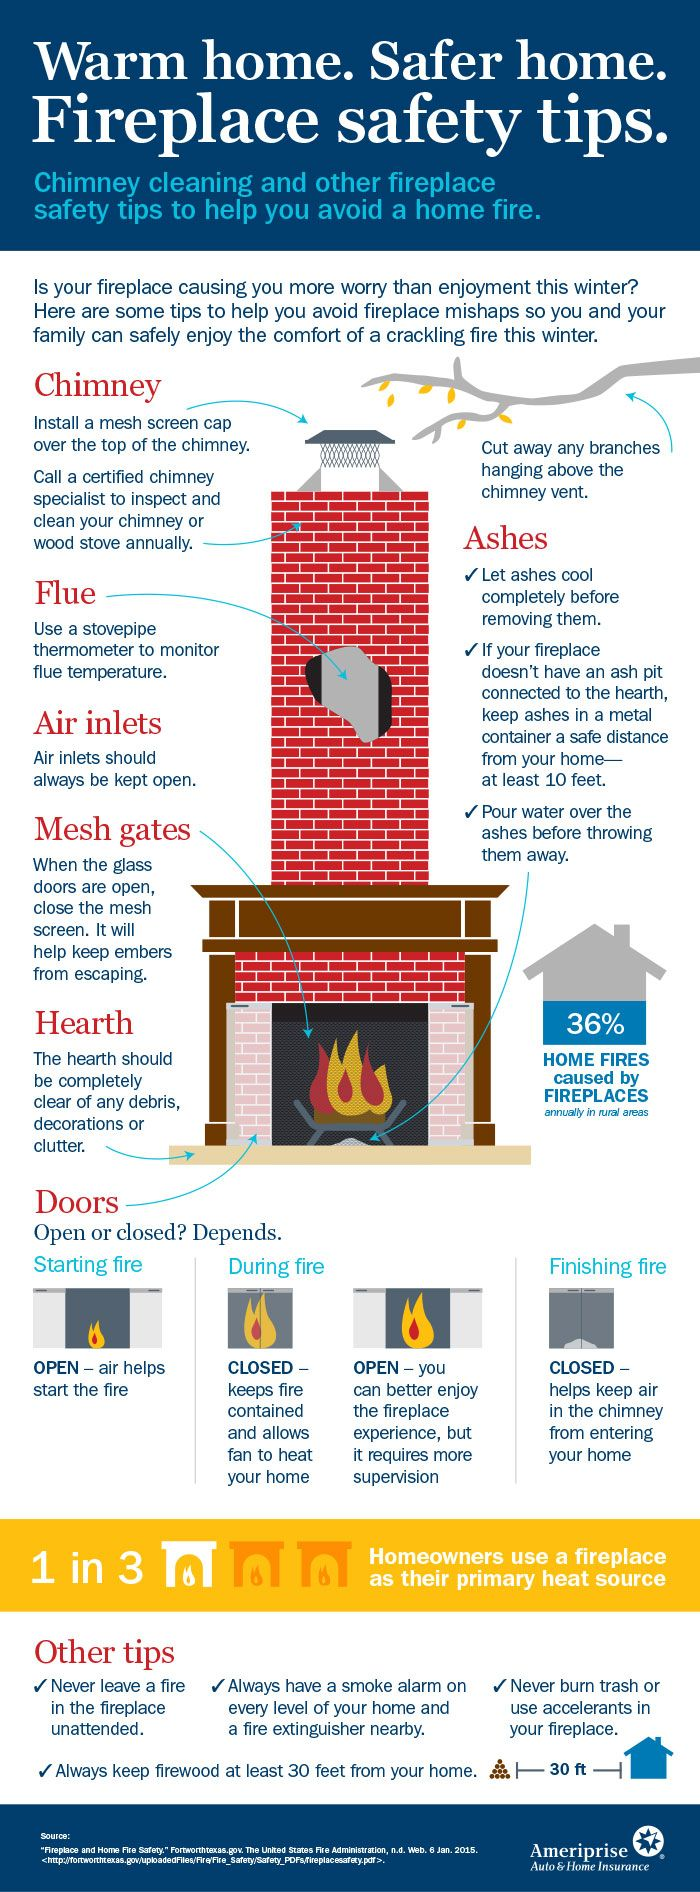 Warm Home Safer Home Fireplace Safety Tips Infographic